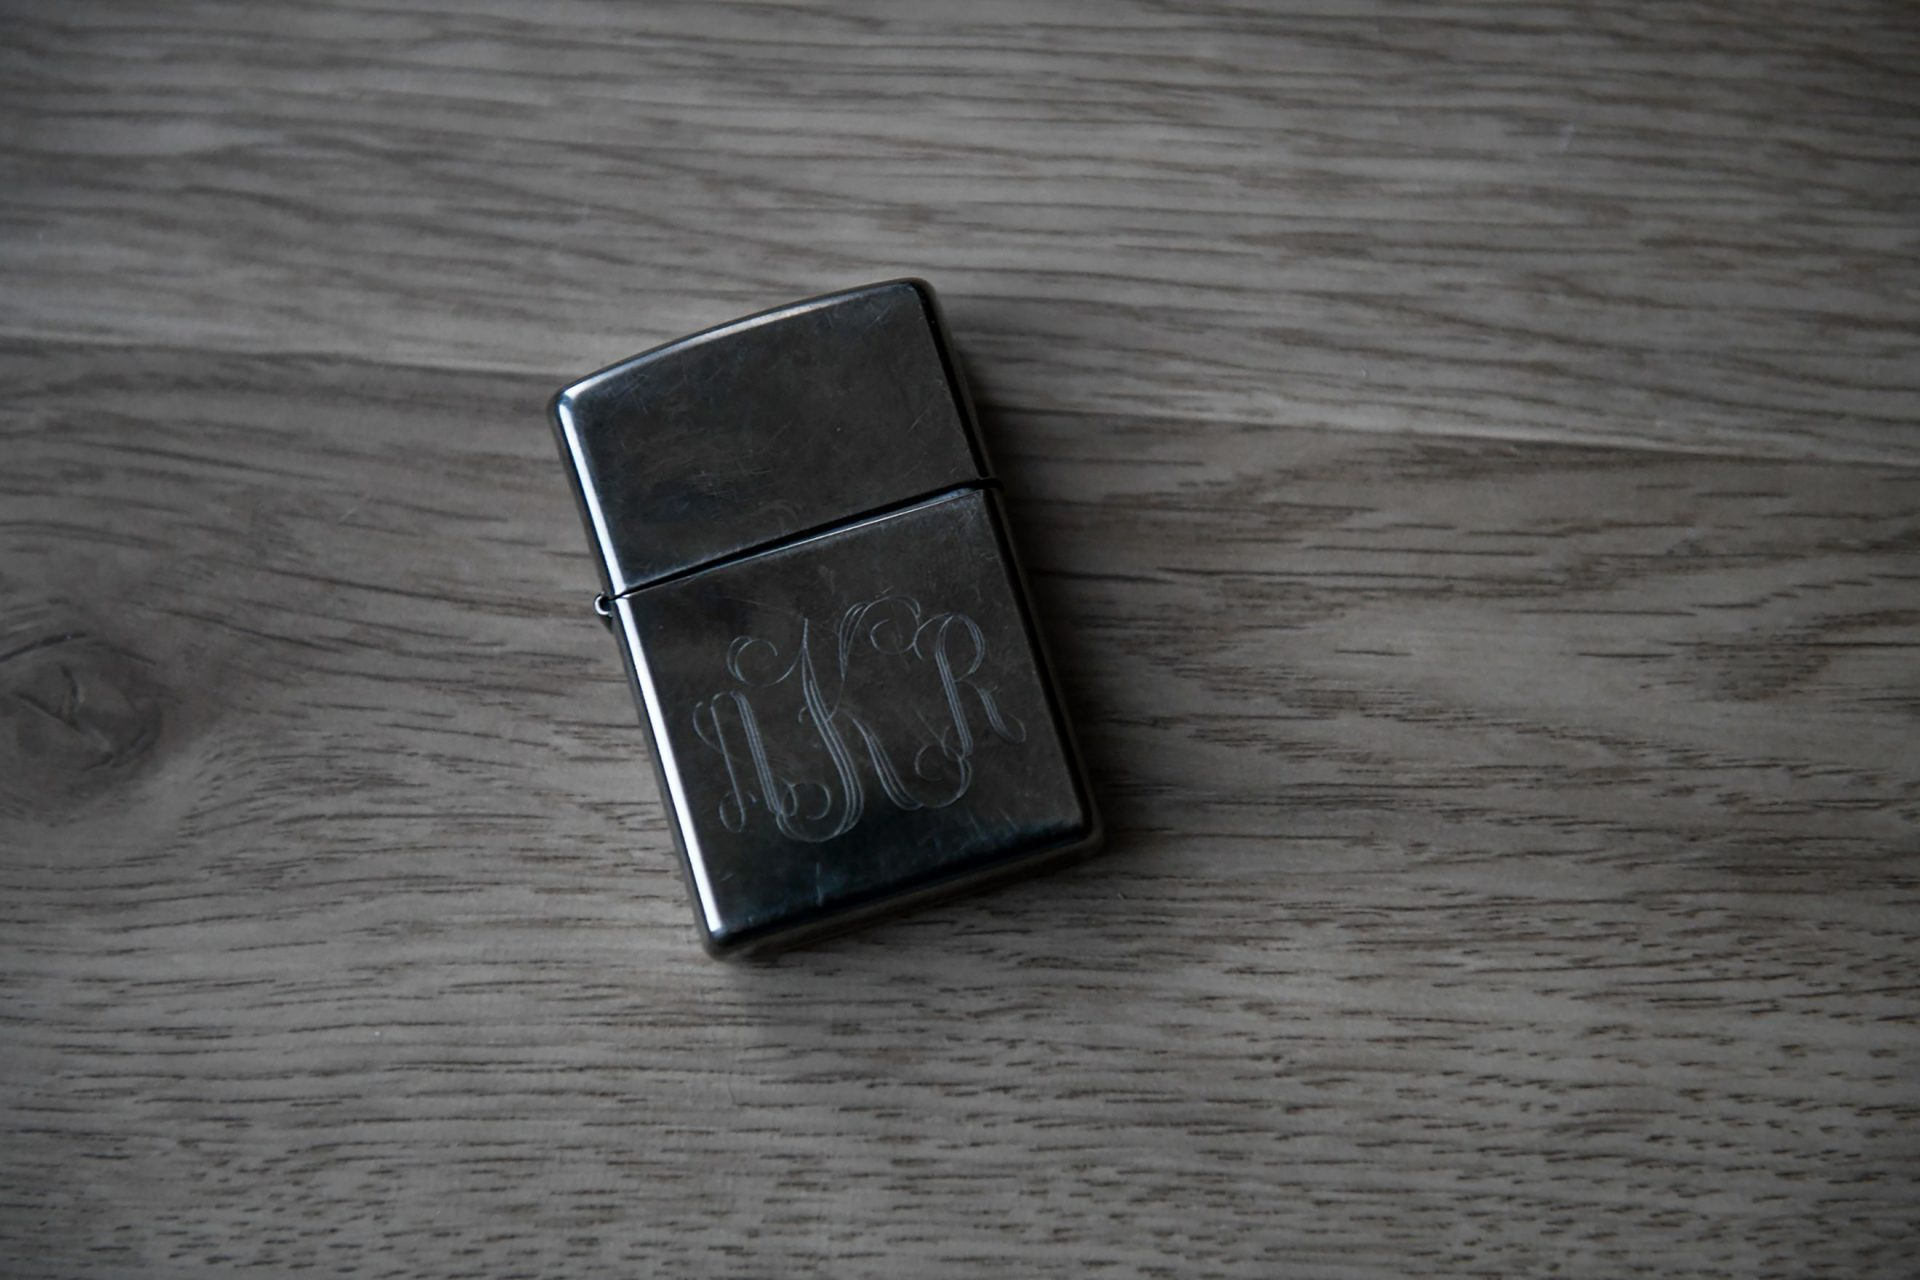 """Adam Kalinowski received a lighter engraved with his initials as a 30th birthday gift from his brother, Ian. After Adam's death in 2014, Ian gave his son the middle name """"Adam"""" as a tribute to his brother and best friend."""